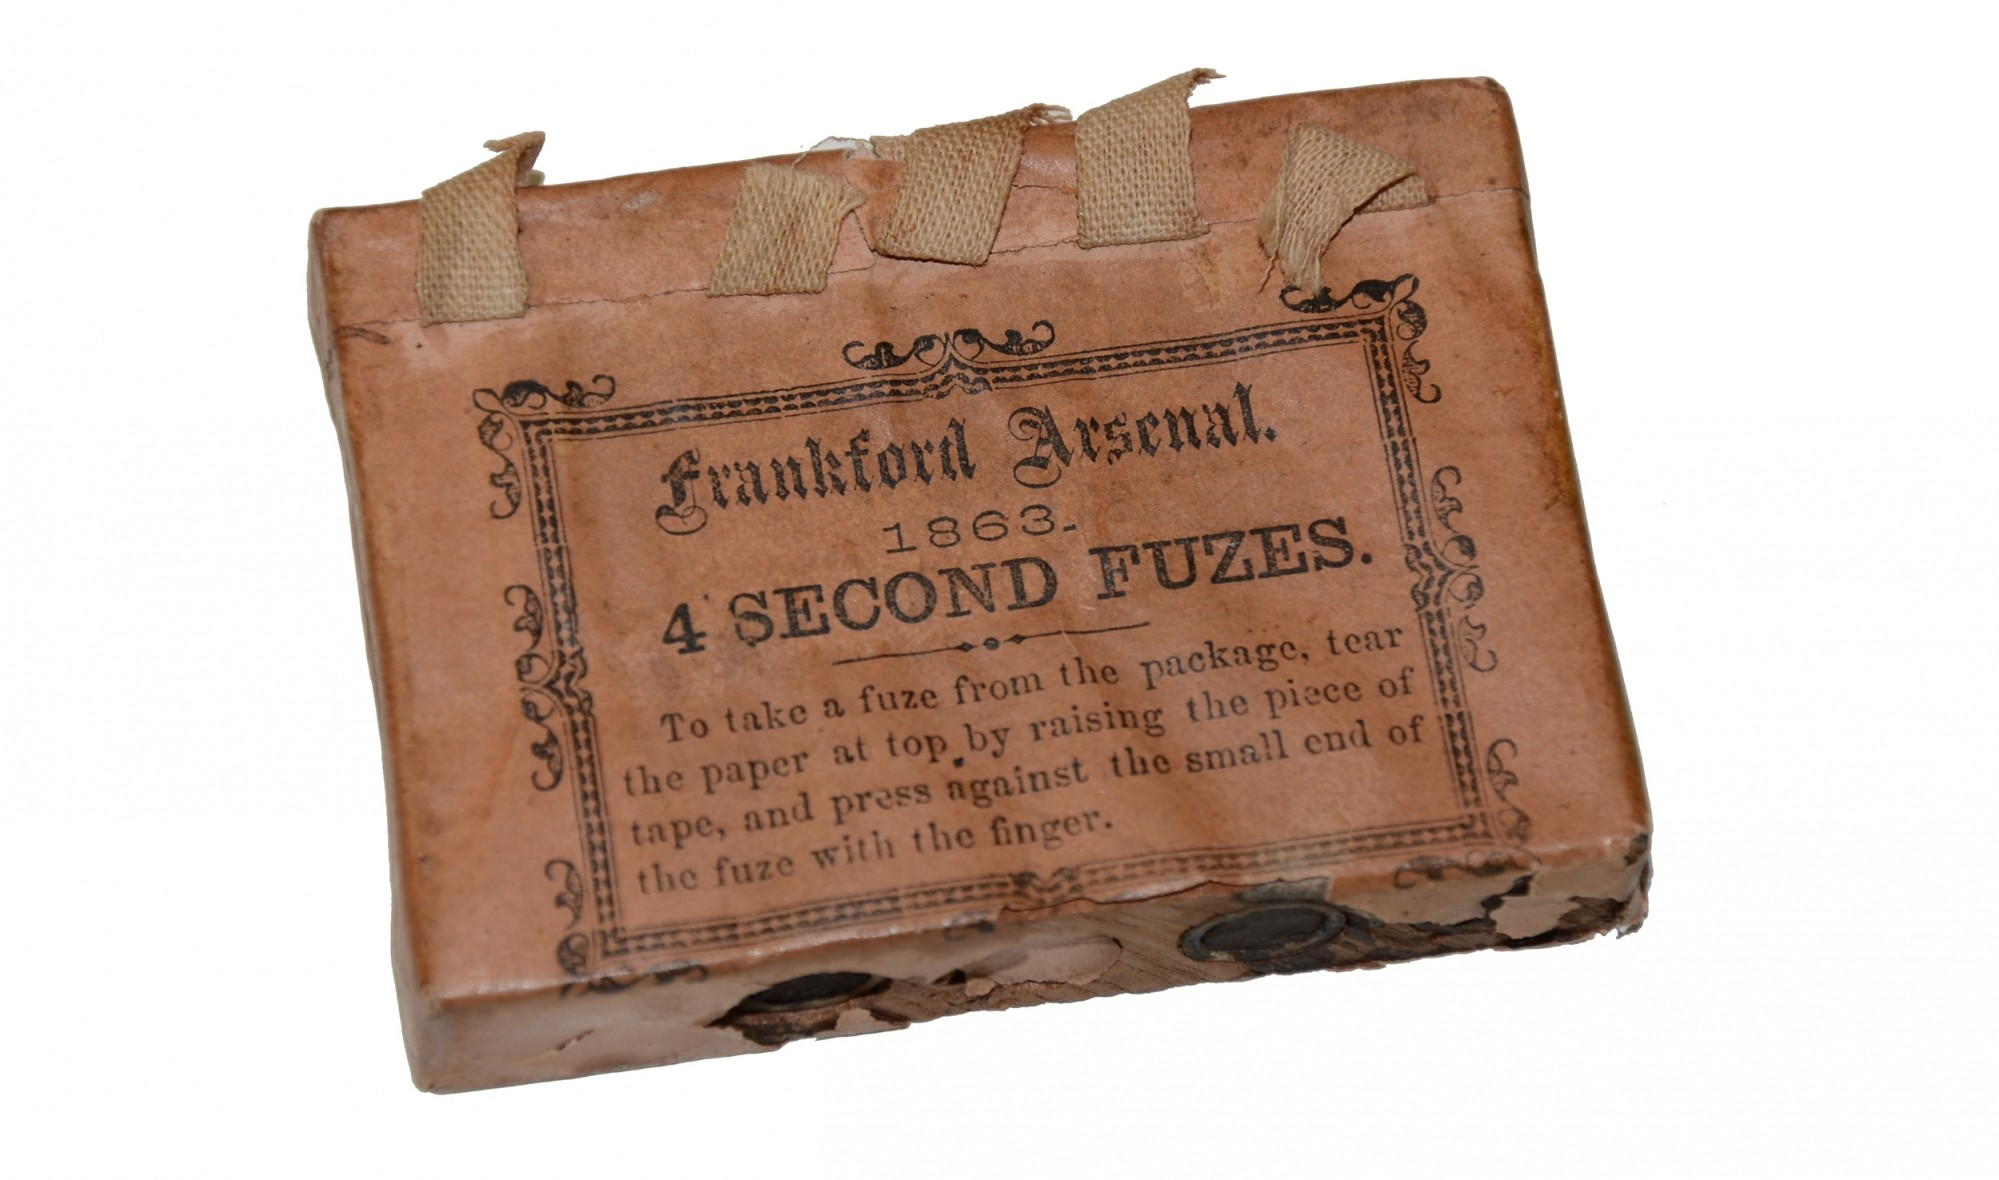 1863 PACK OF FRANKFORD ARSENAL FUSES